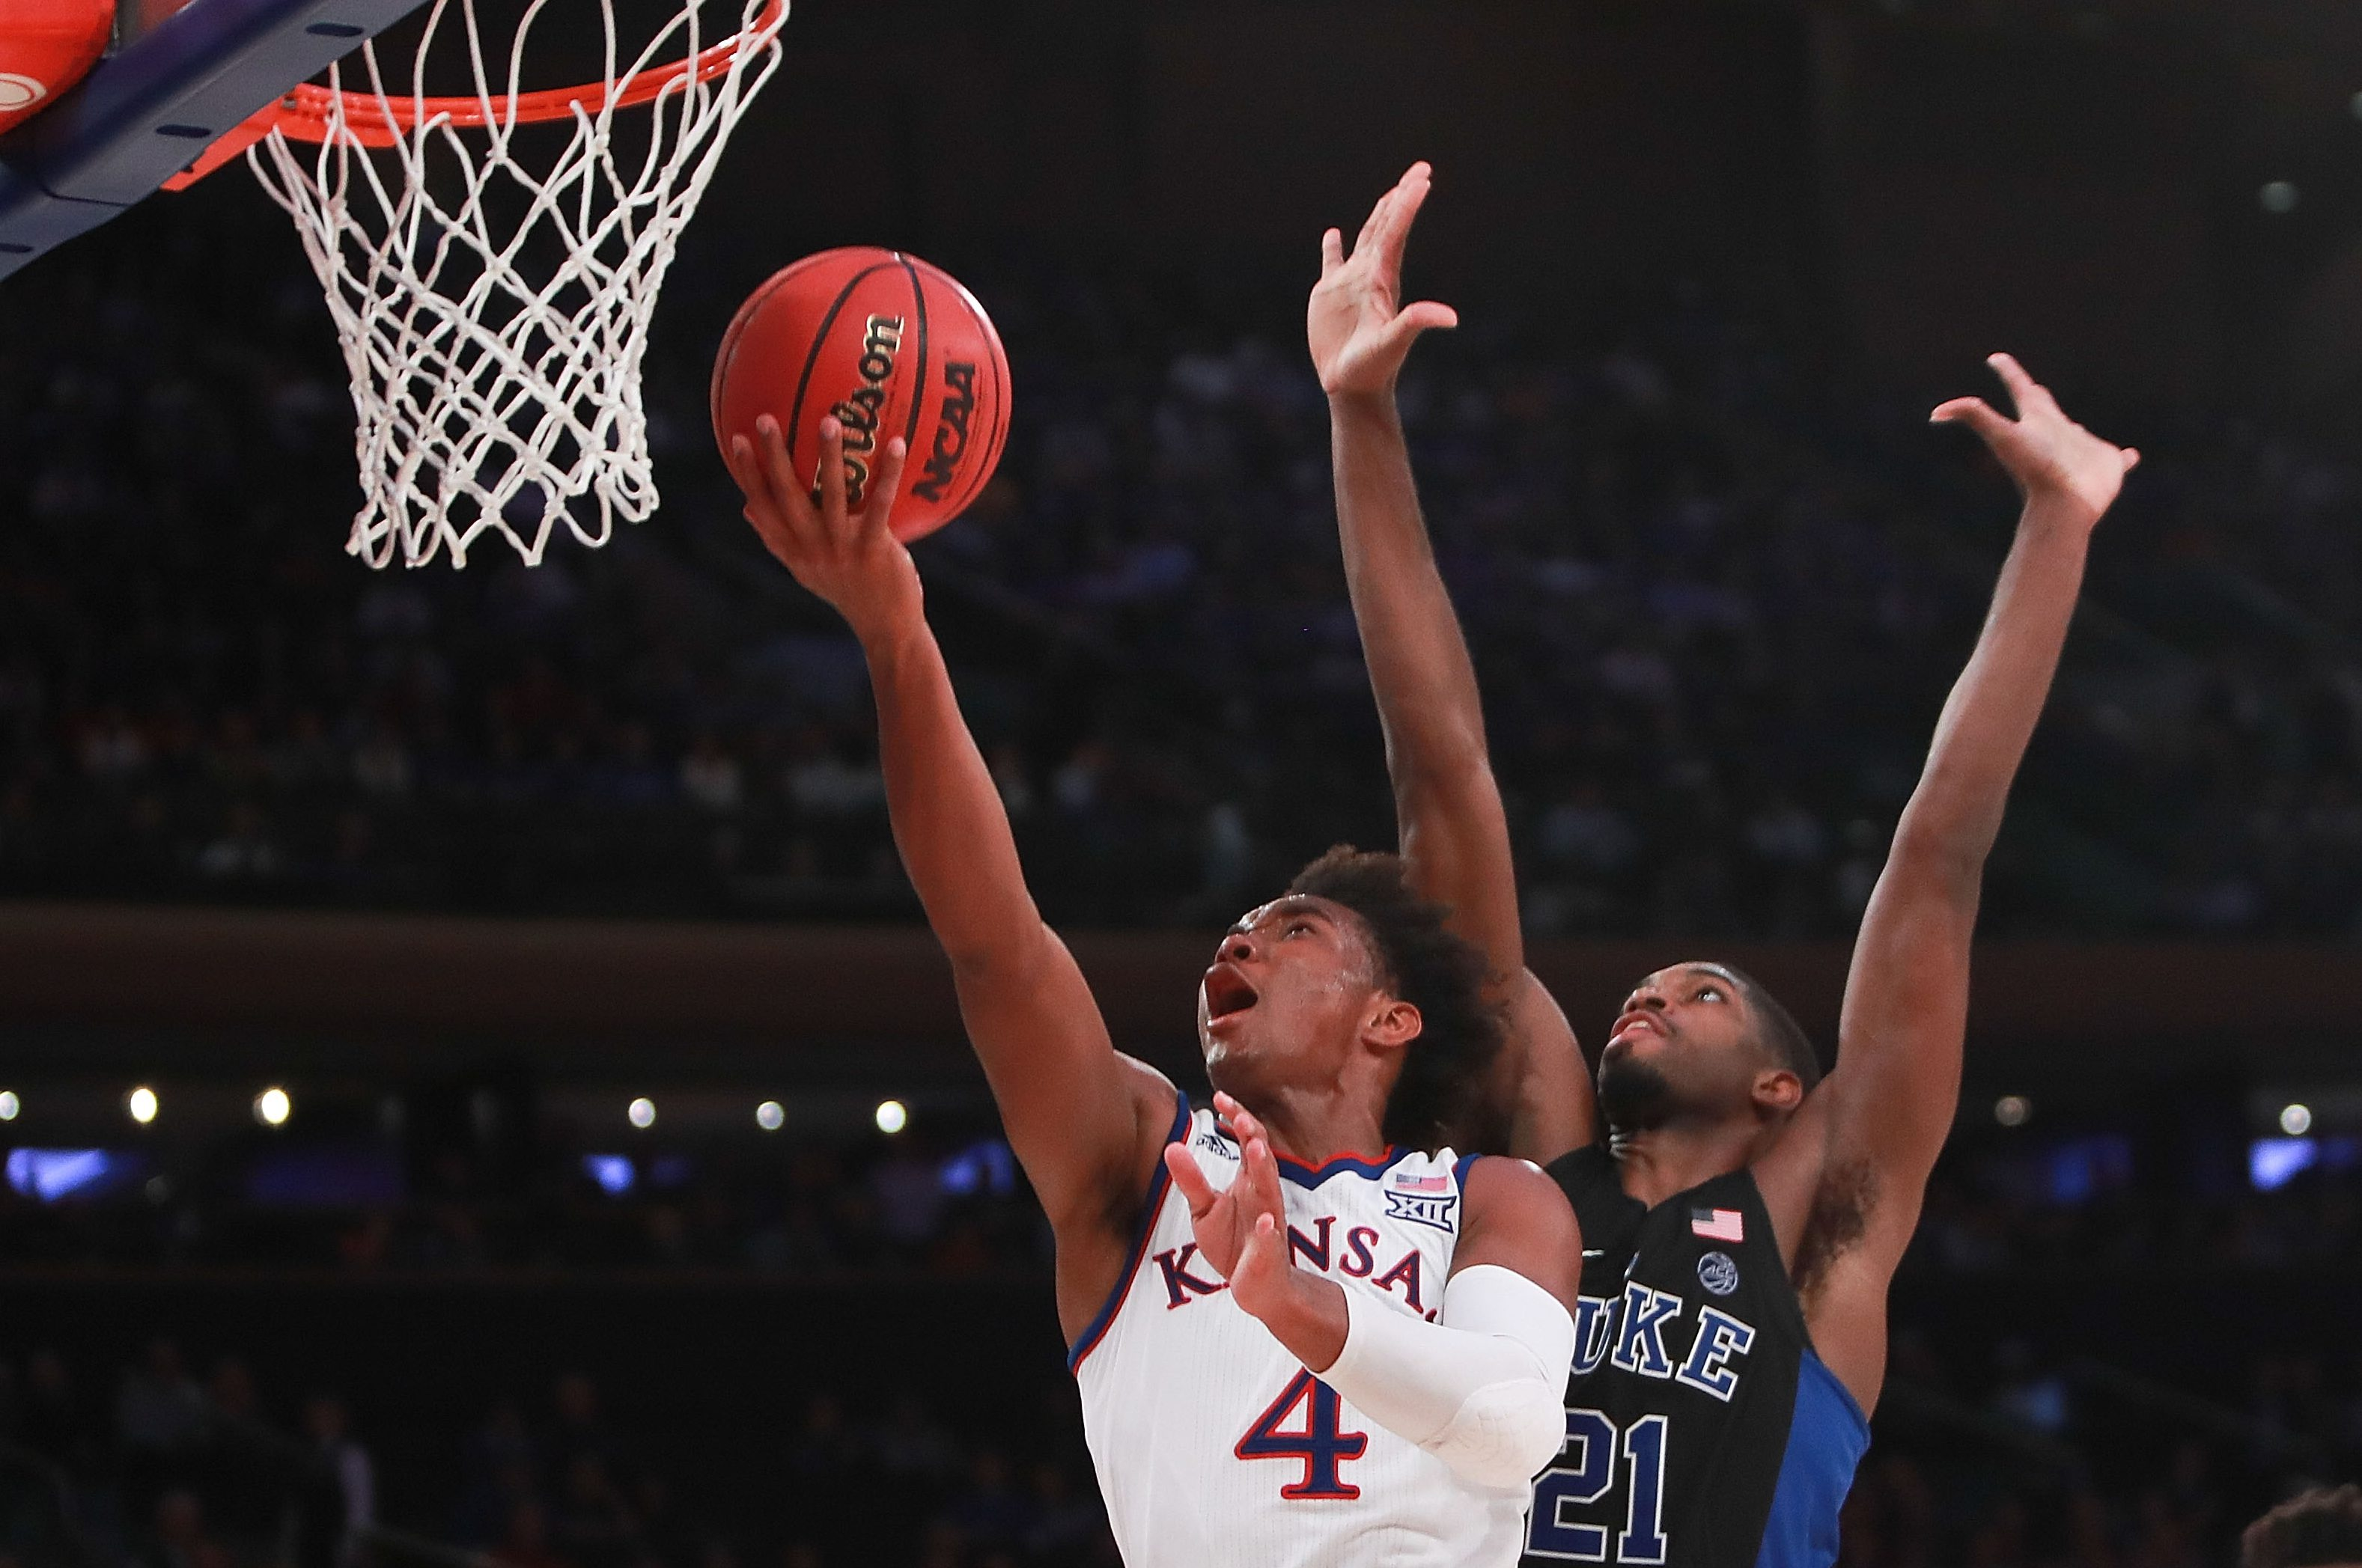 NEW YORK, NY - NOVEMBER 15: Devonte' Graham #4 of the Kansas Jayhawks puts up a layup over Amile Jefferson #21 of the Duke Blue Devils in the second half during the State Farm Champions Classic at Madison Square Garden on November 15, 2016 in New York City. (Photo by Michael Reaves/Getty Images)